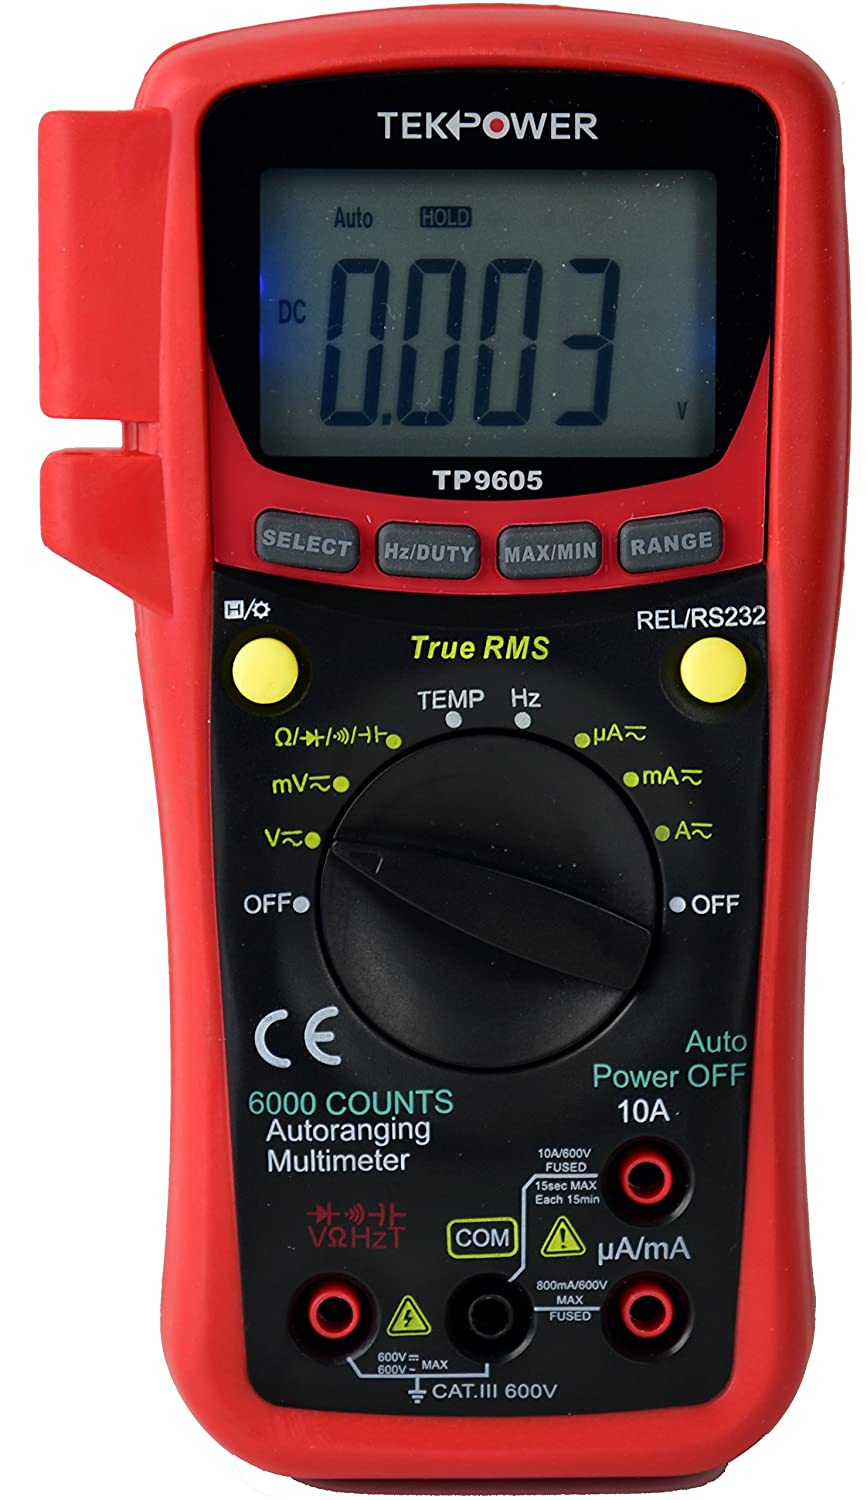 TekPower TP9605BT Android Cellphone Connection and PC based USB Interfaced Auto Ranging Digital True RMS Multimeter, Wireless Multimeter